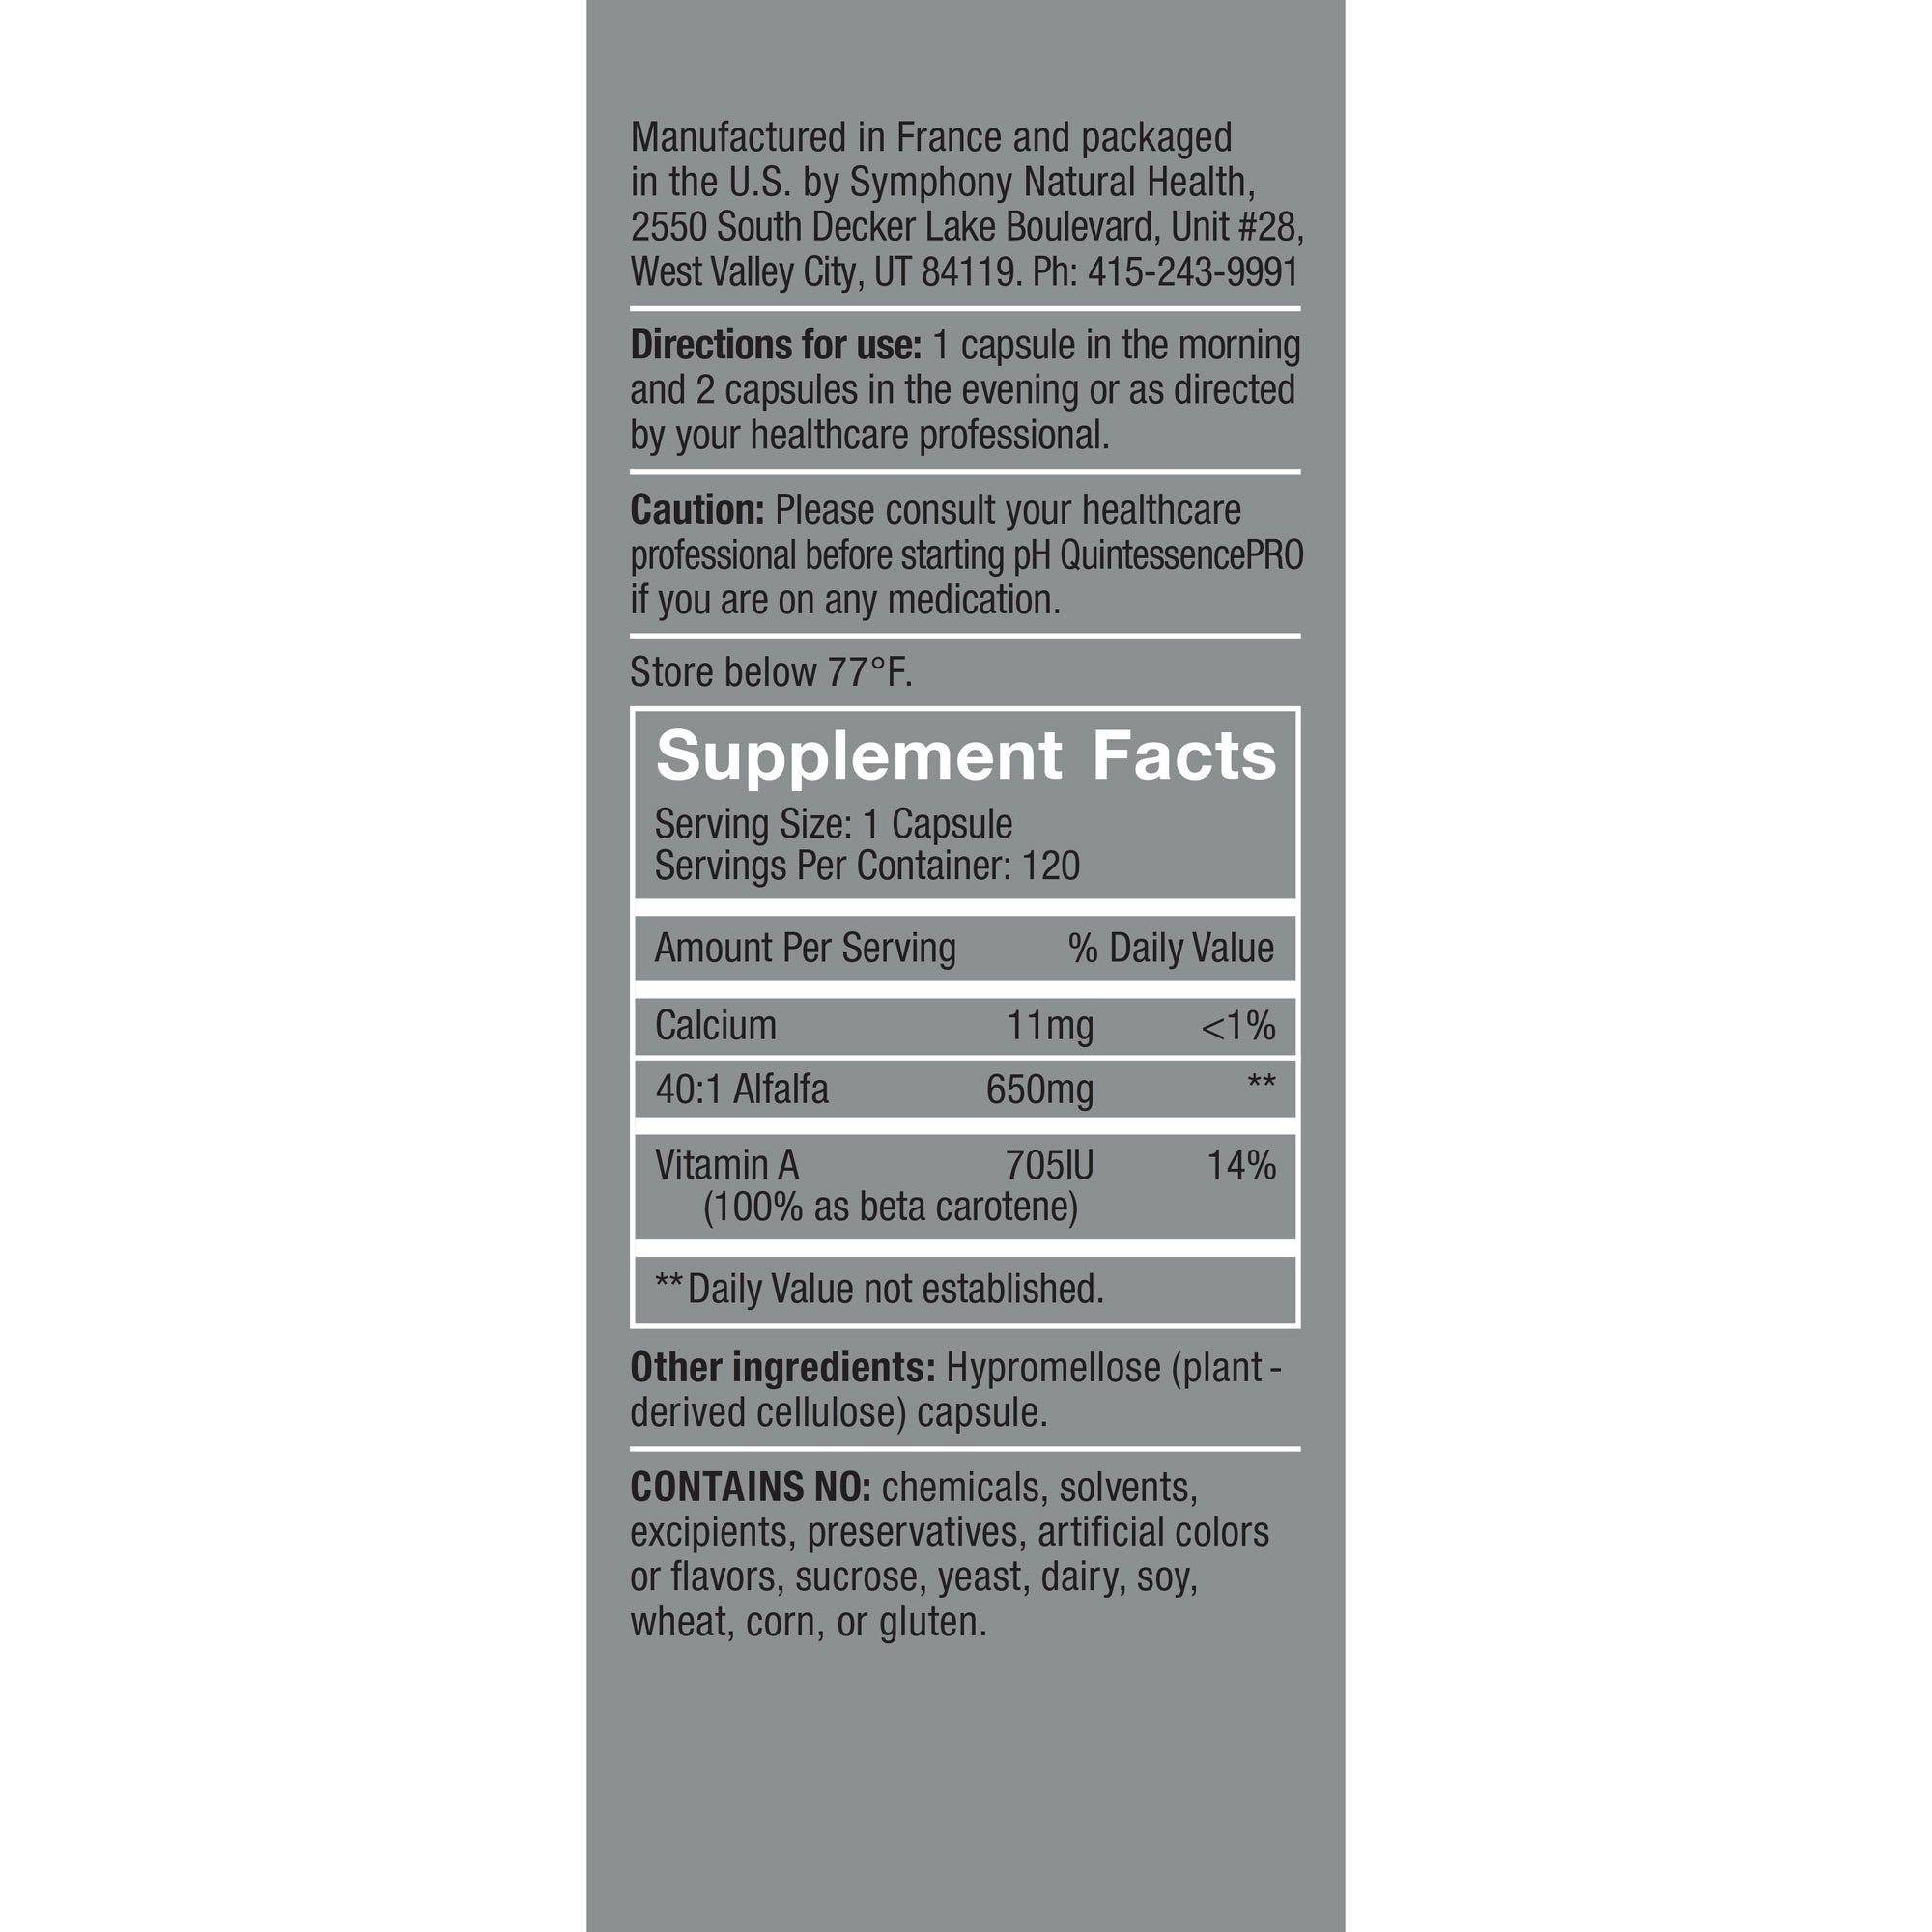 pH QuintessencePRO Supplement Facts, Serving Size: 1 Capsule, Servings Per container: 120